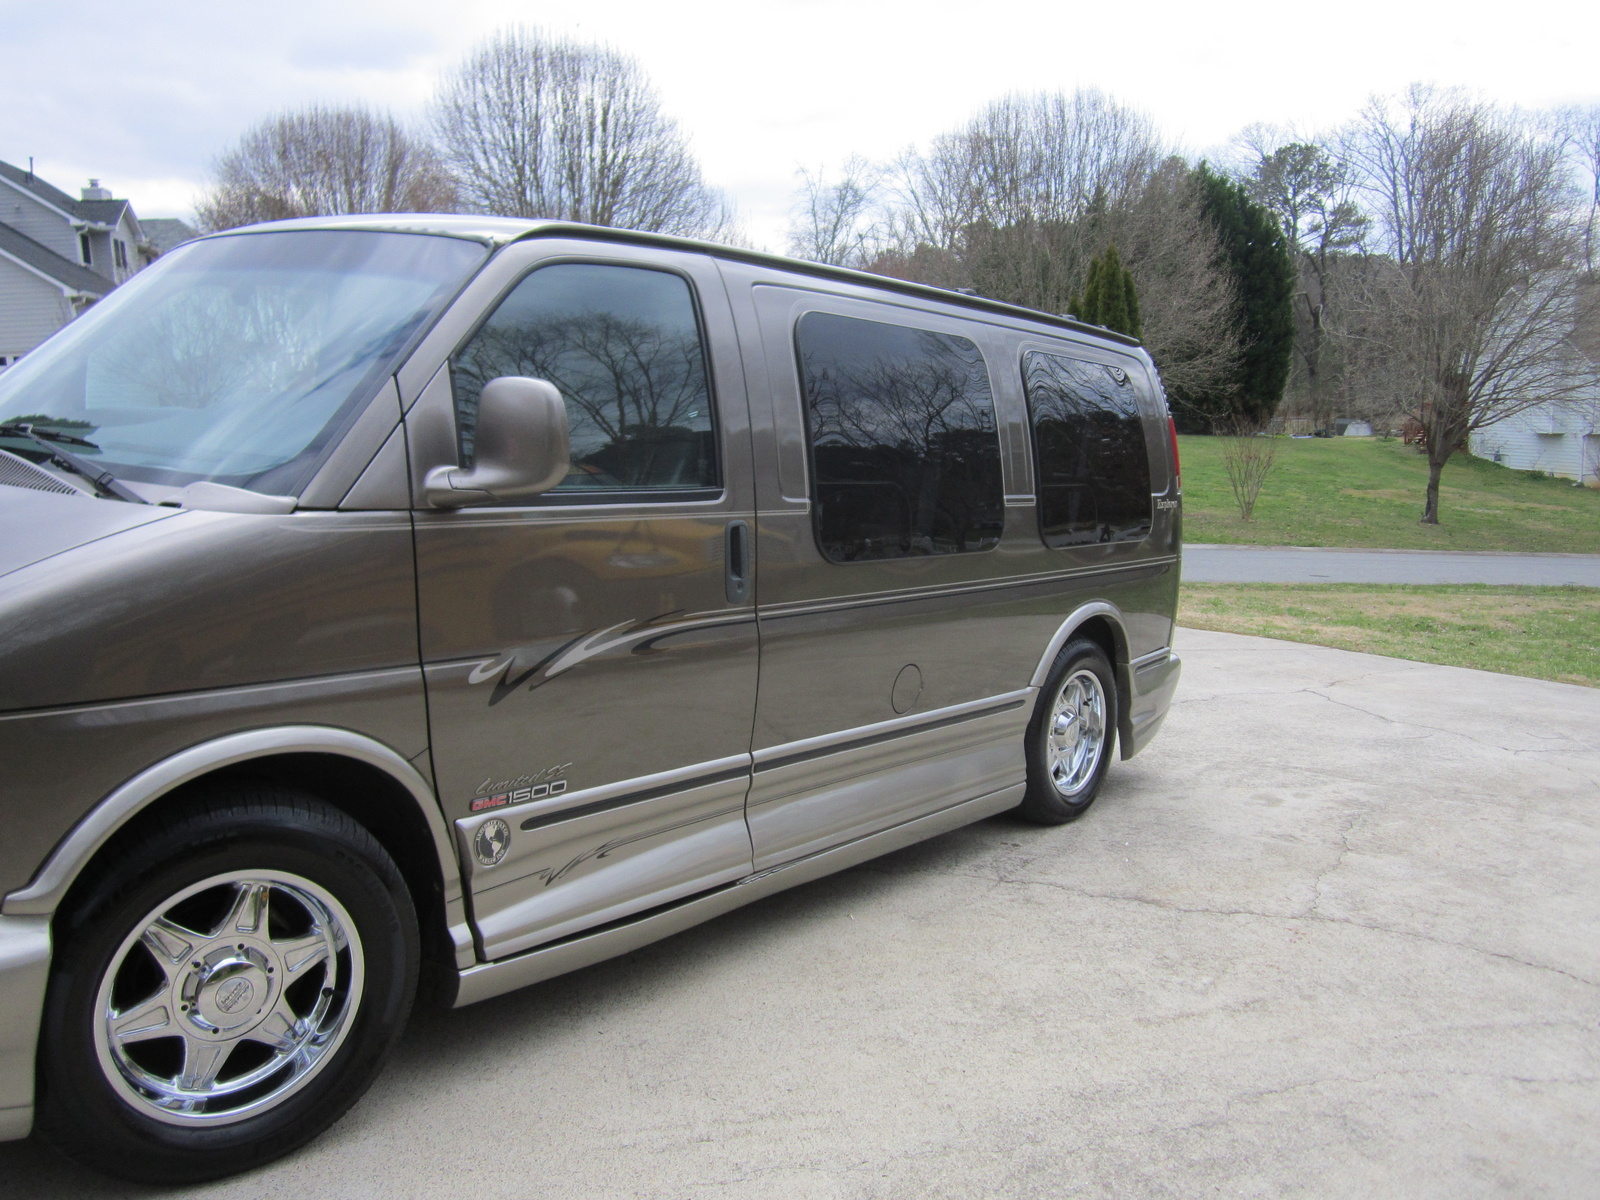 Picture of 2002 GMC Savana G1500 SLE Passenger Van